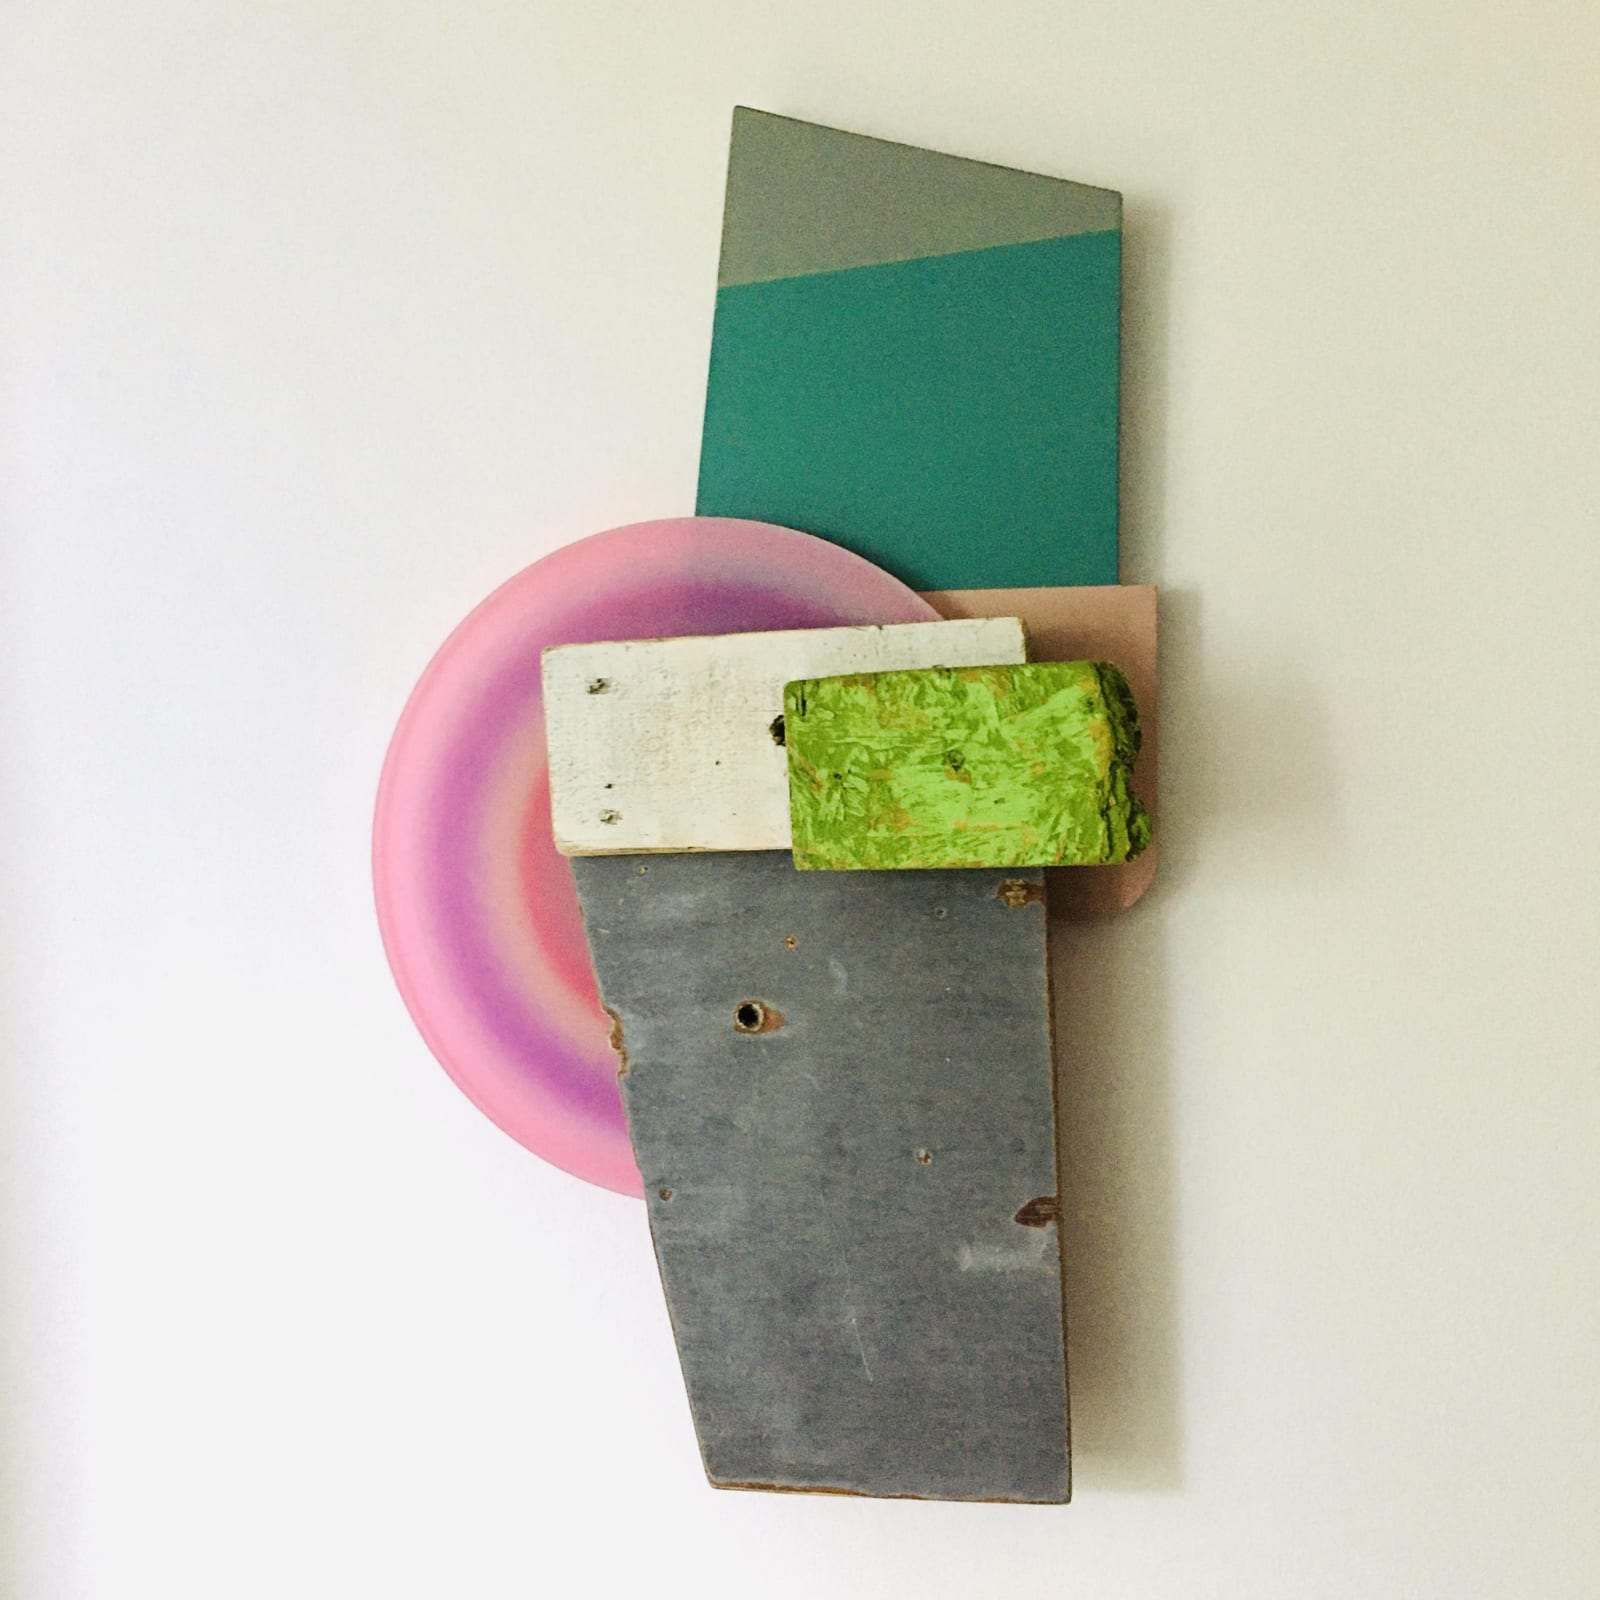 Andrés Ferrandis Papchock, 2020 Wood, polycarbonate, found object, silkscreen, cardboard, oil and acrylic painting 24 x 13 x 4